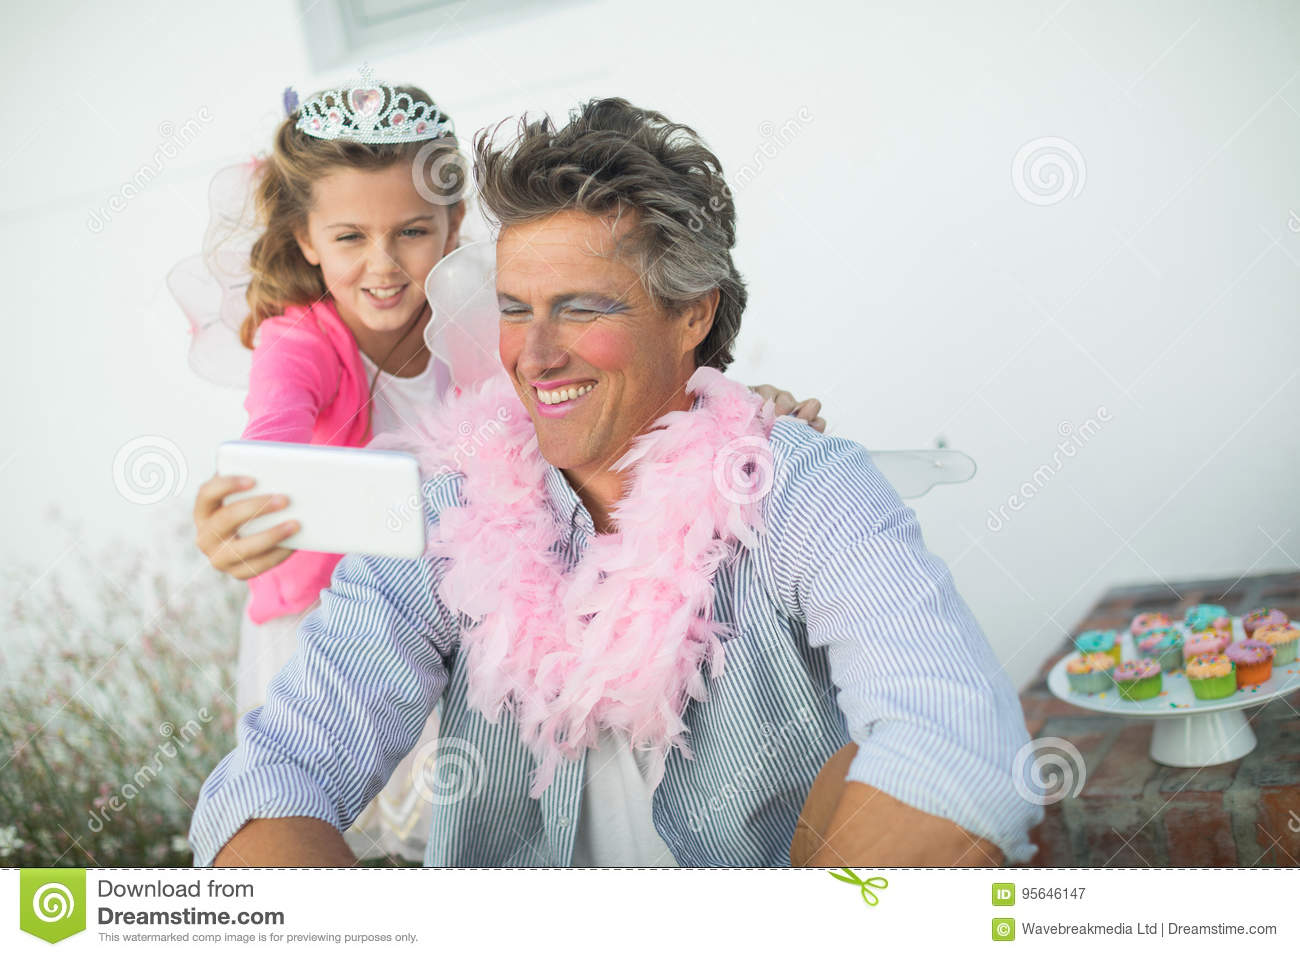 Cute daughter in fairy costume showing mobile phone to father